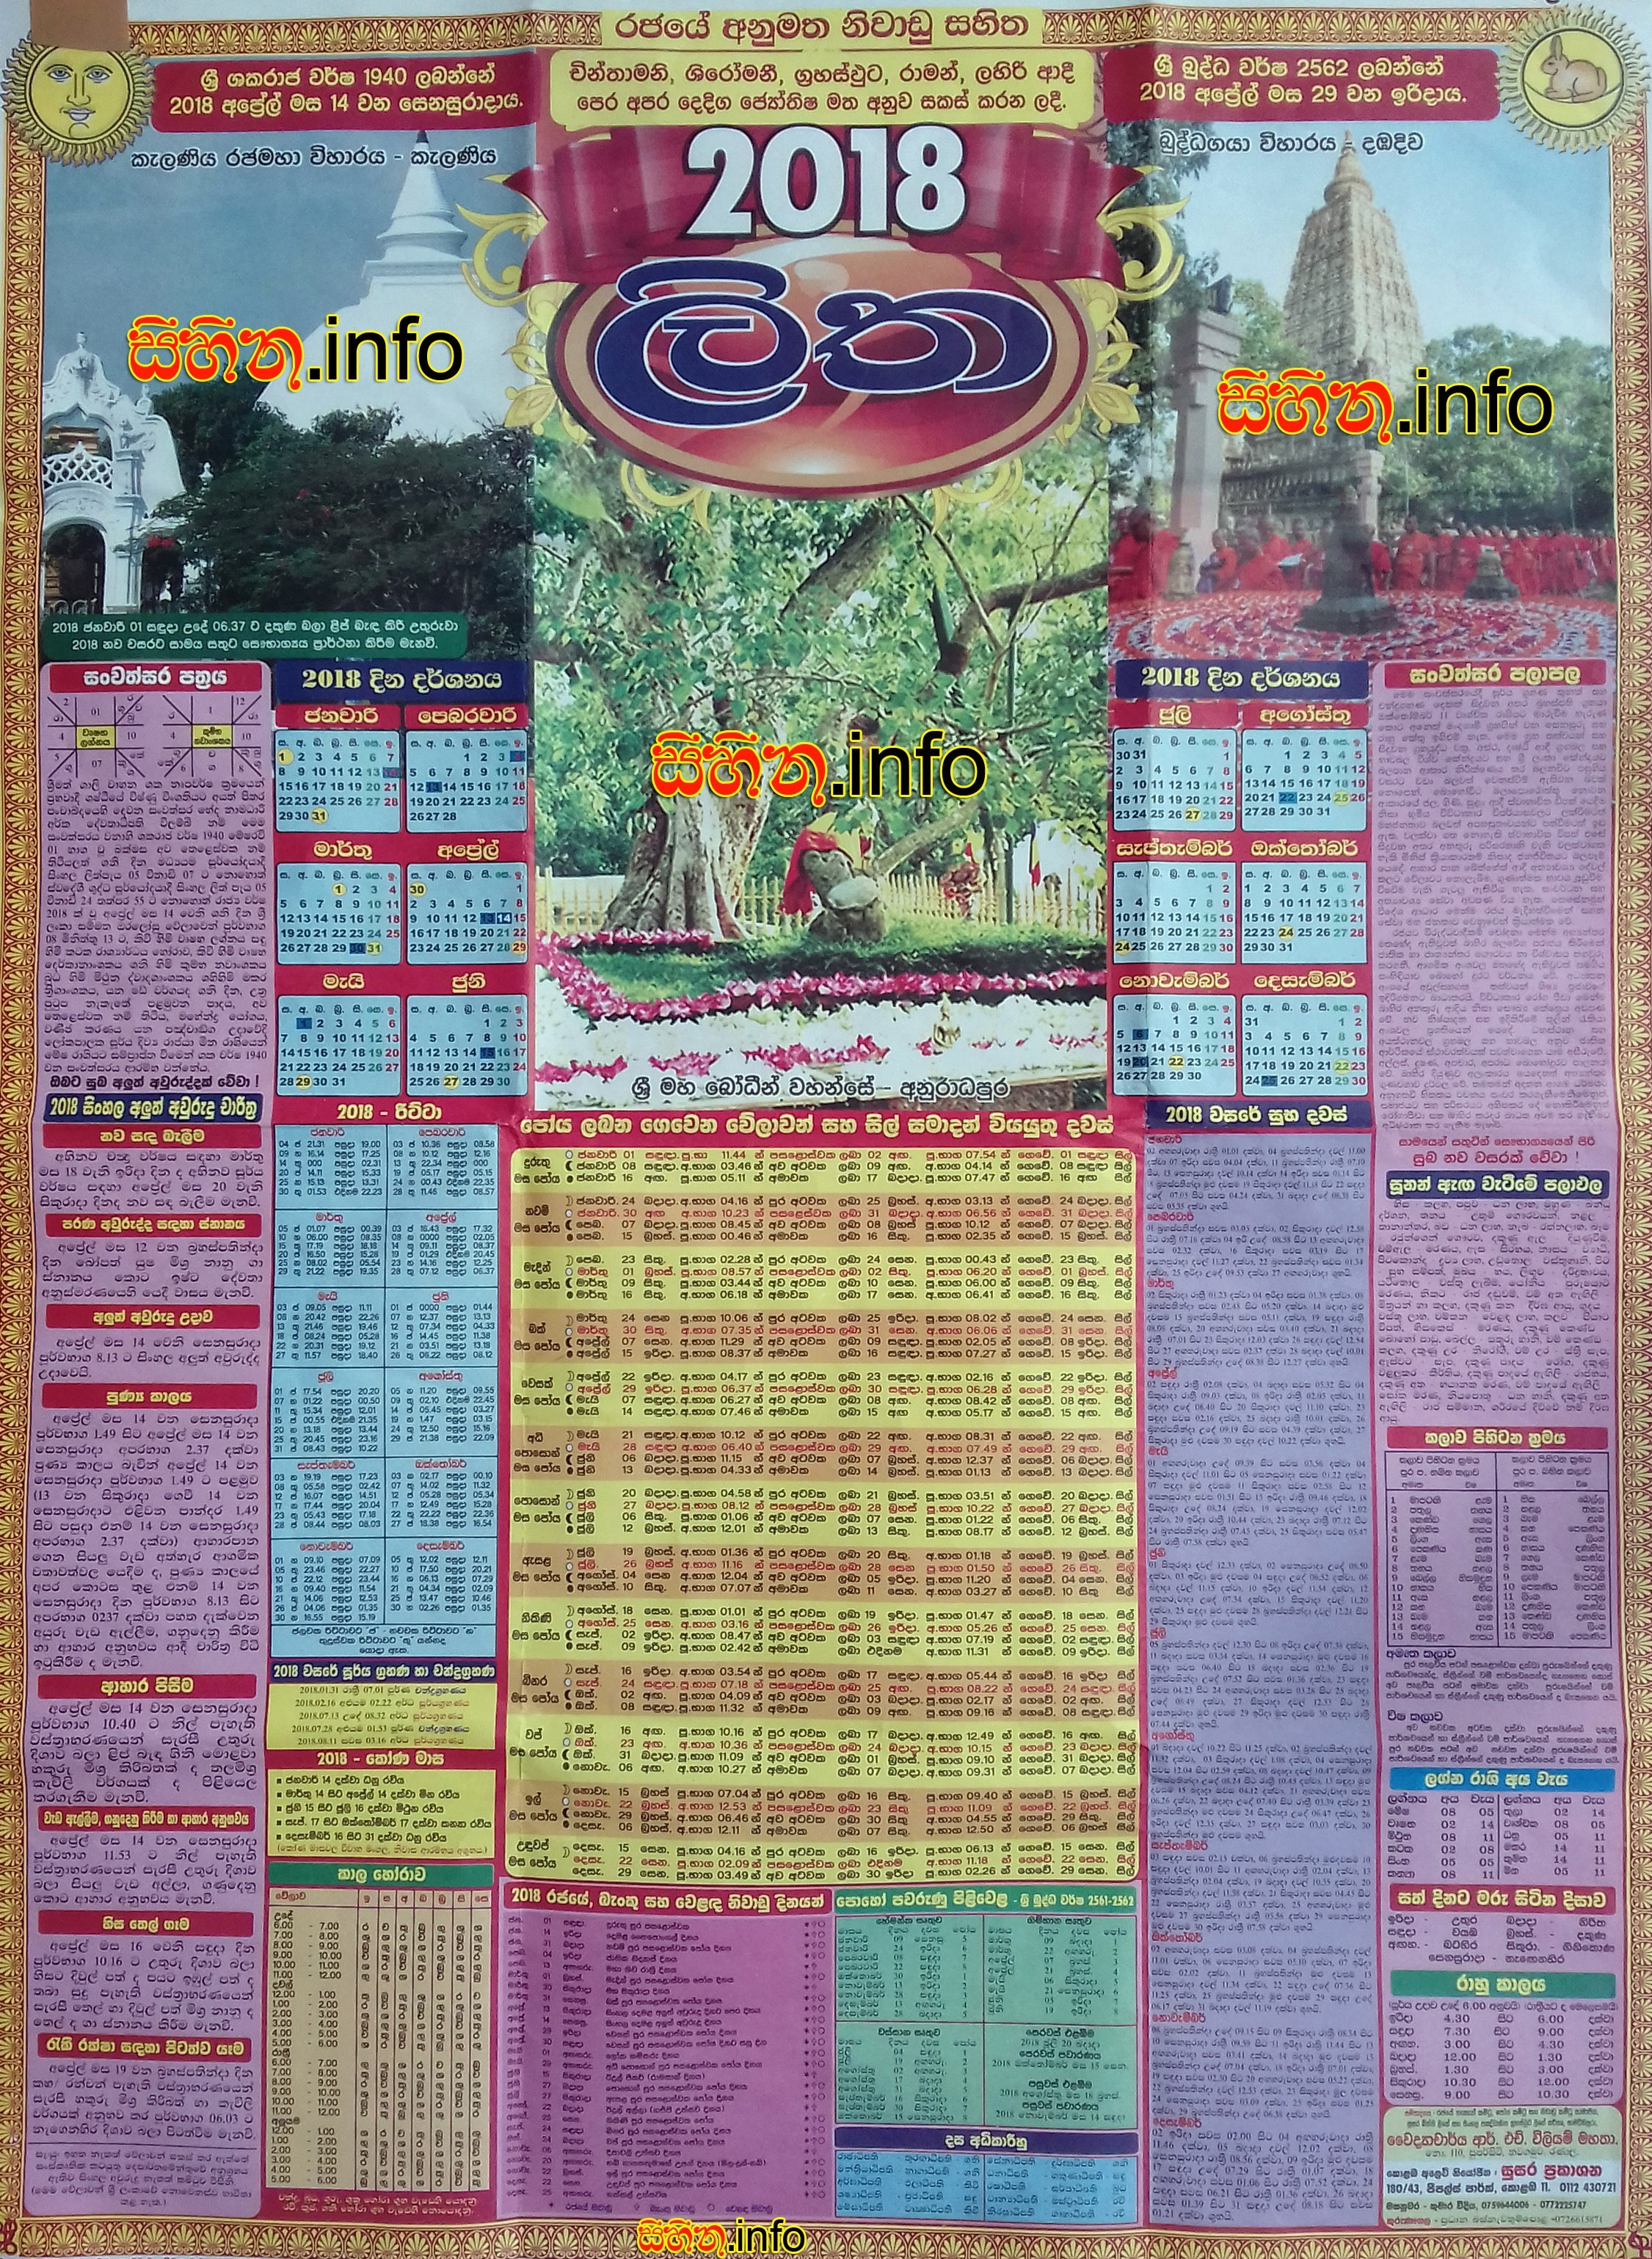 2019 March Calendar Sri Lanka Más Reciente Julian Calendar 2019 Quadax July 2018 Calendar Sri Lanka – Calendar Of 2019 March Calendar Sri Lanka Más Reciente Julian Calendar 2019 Quadax July 2018 Calendar Sri Lanka – Calendar